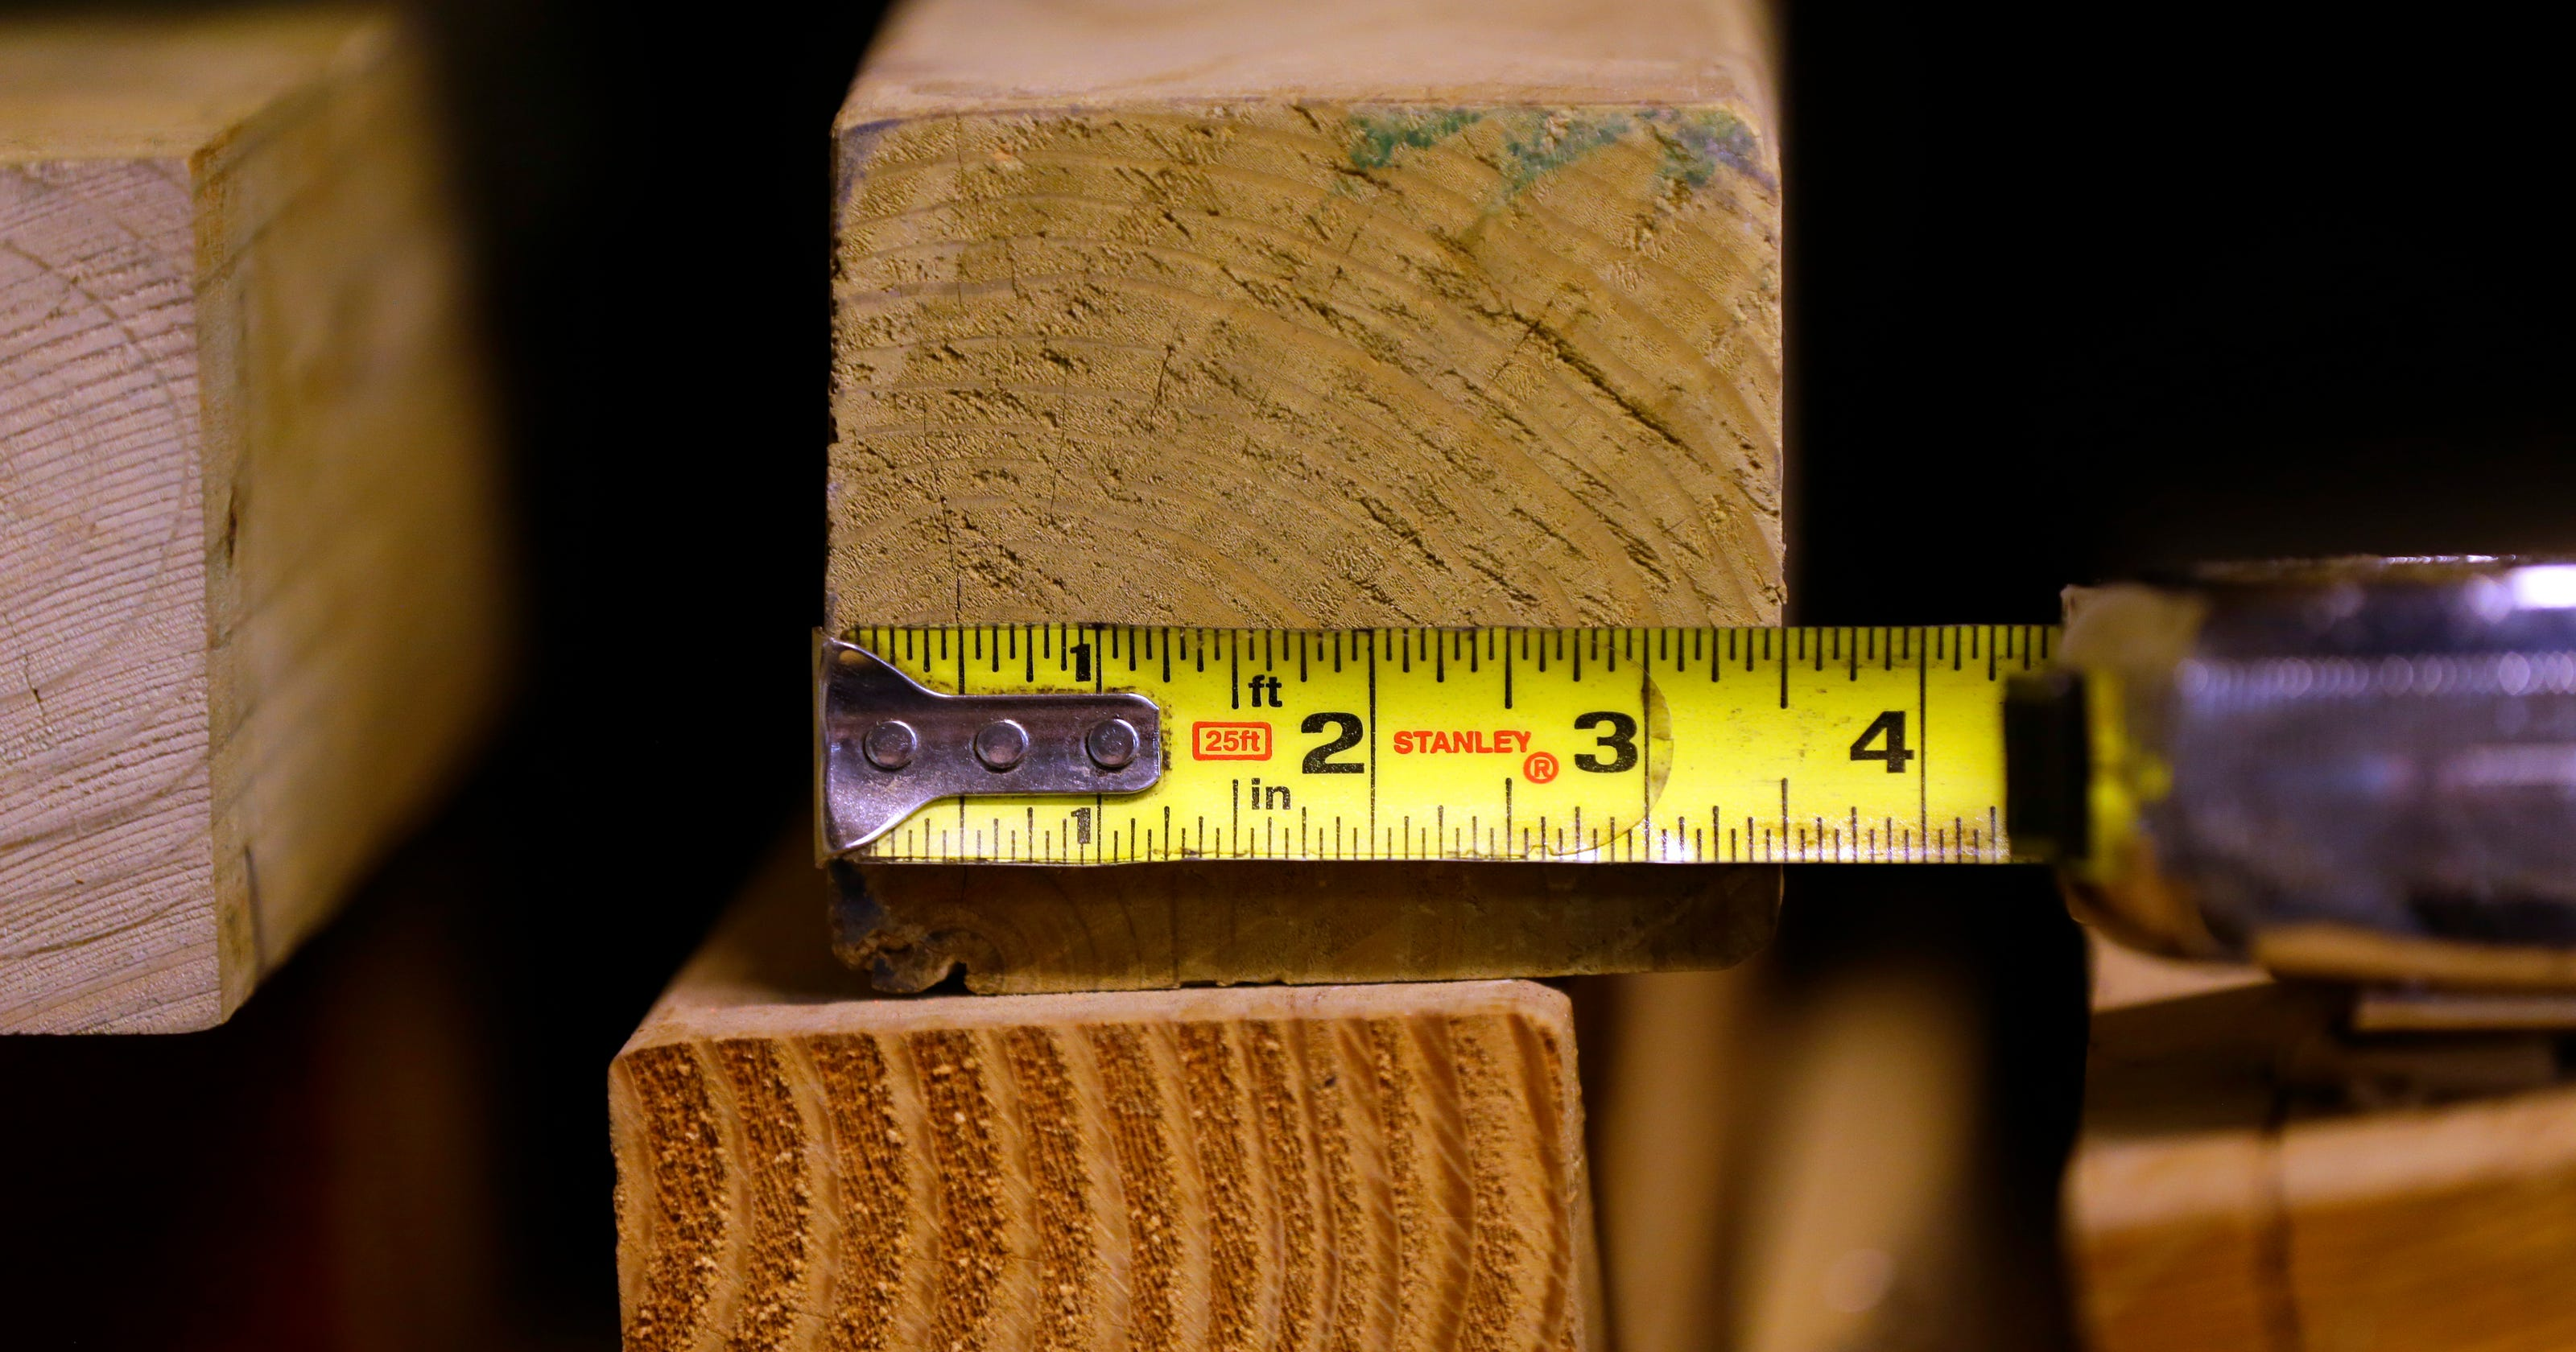 Whacked With A 4x4 Menards Home Depot Face Lawsuits Over Descriptions Of Lumber Size